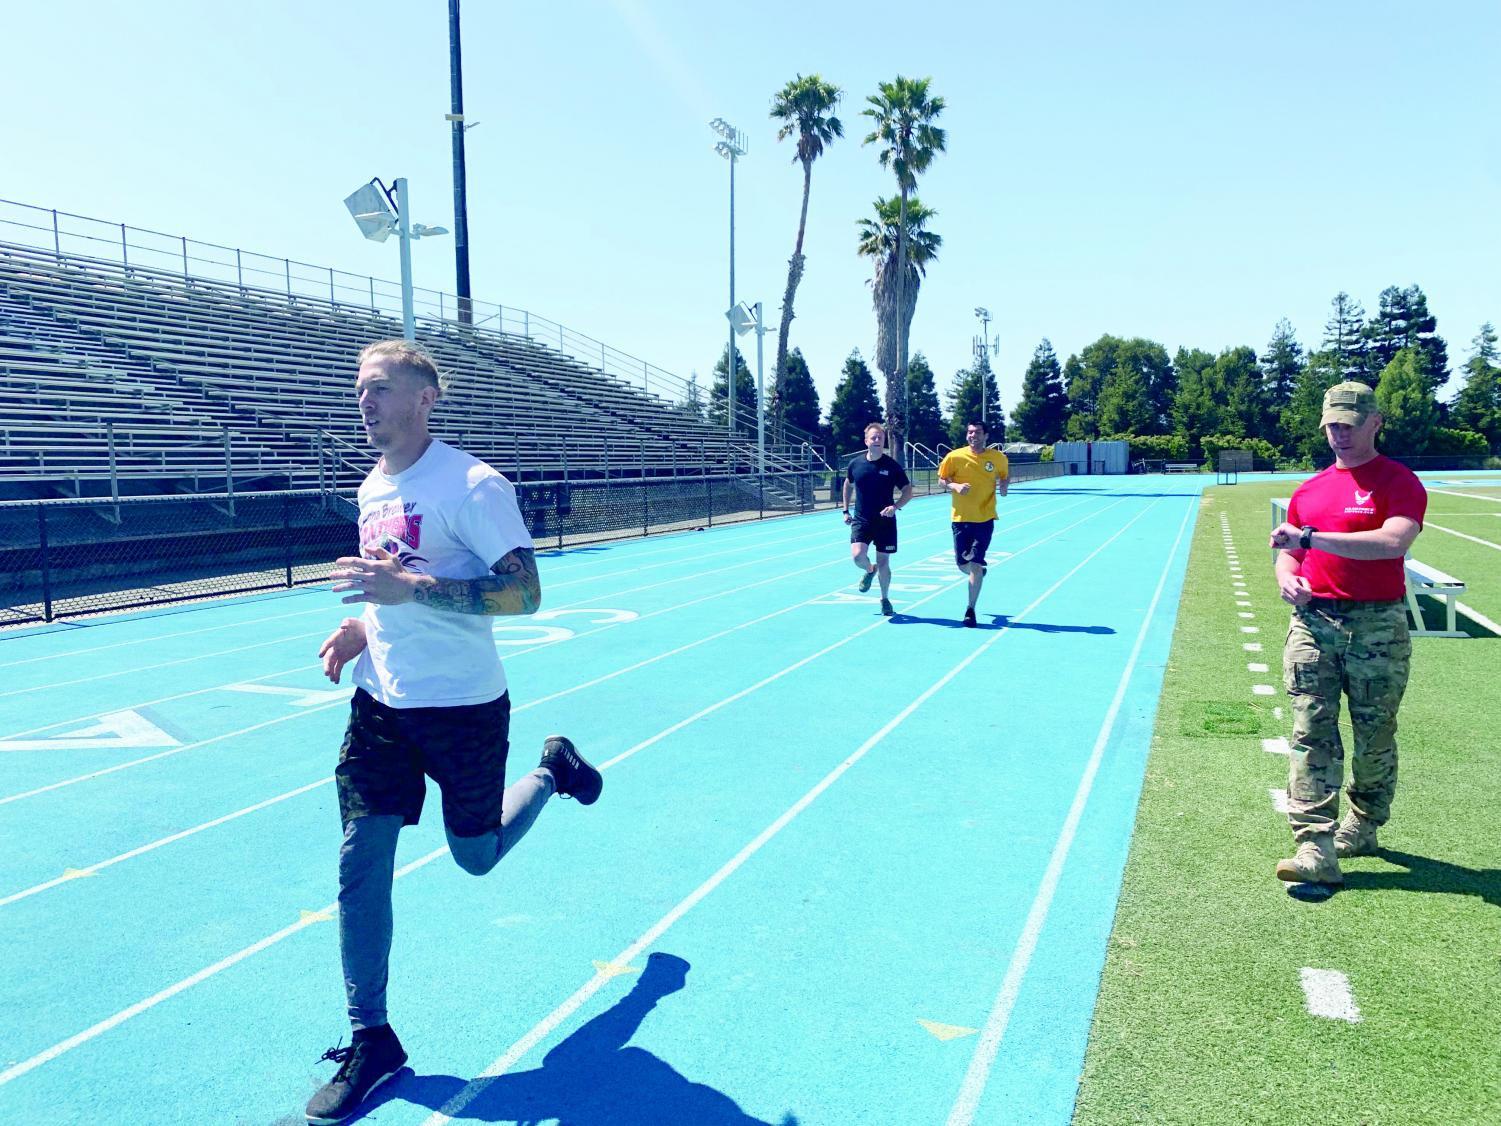 Zachary Frappier (left) strides as he crosses the finish line during the 800 meter run at the Armed Forces Day event in Comet Stadium on May 3.